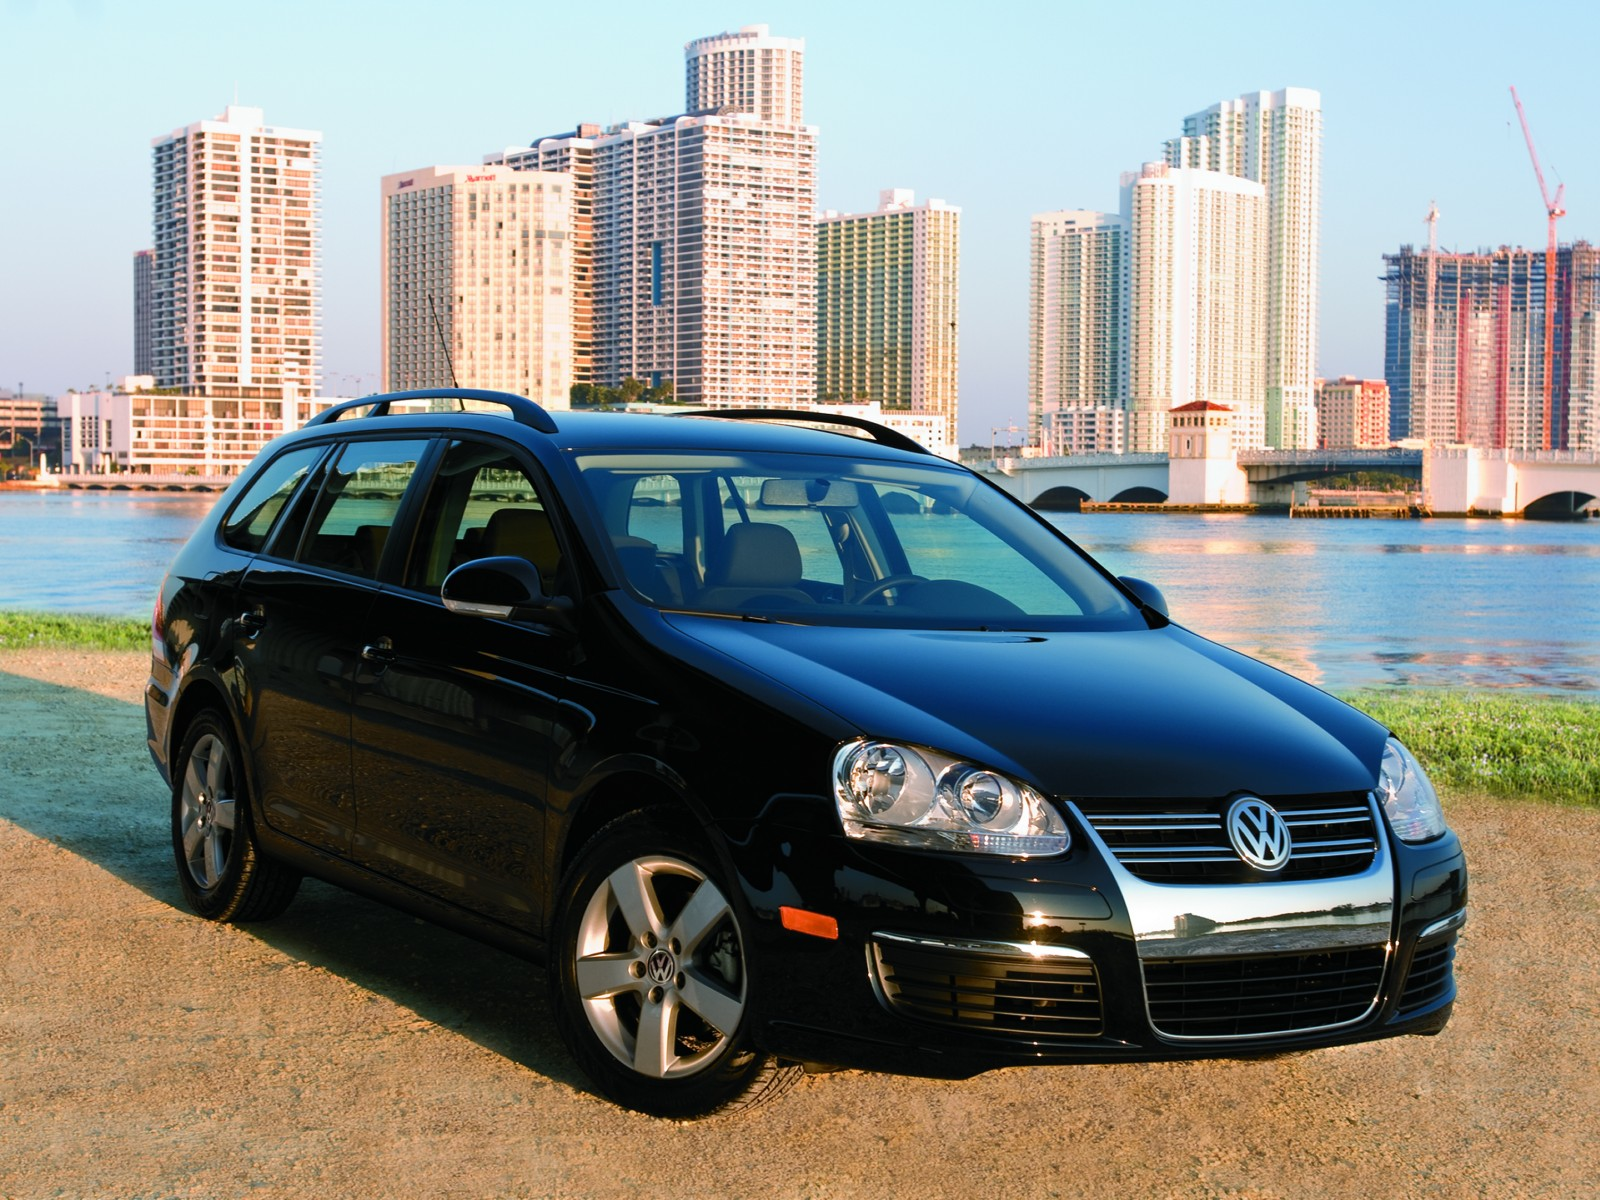 2009 volkswagen jetta sportwagen motor desktop. Black Bedroom Furniture Sets. Home Design Ideas